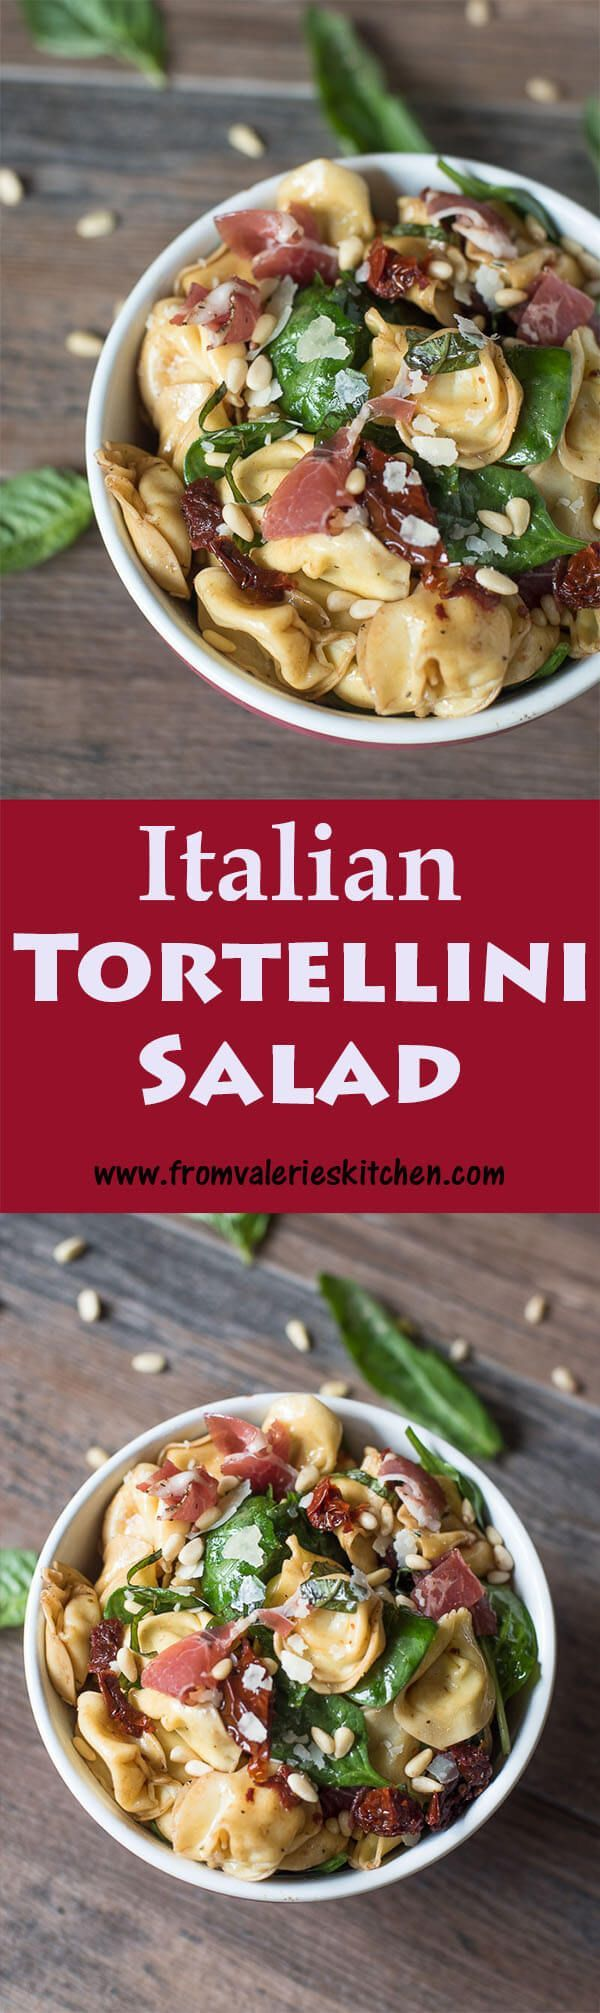 This rustic, colorful Italian Tortellini Salad is packed full of irresistible flavor. It is sure to be a hit at your next gathering! ~ http://www.fromvalerieskitchen.com